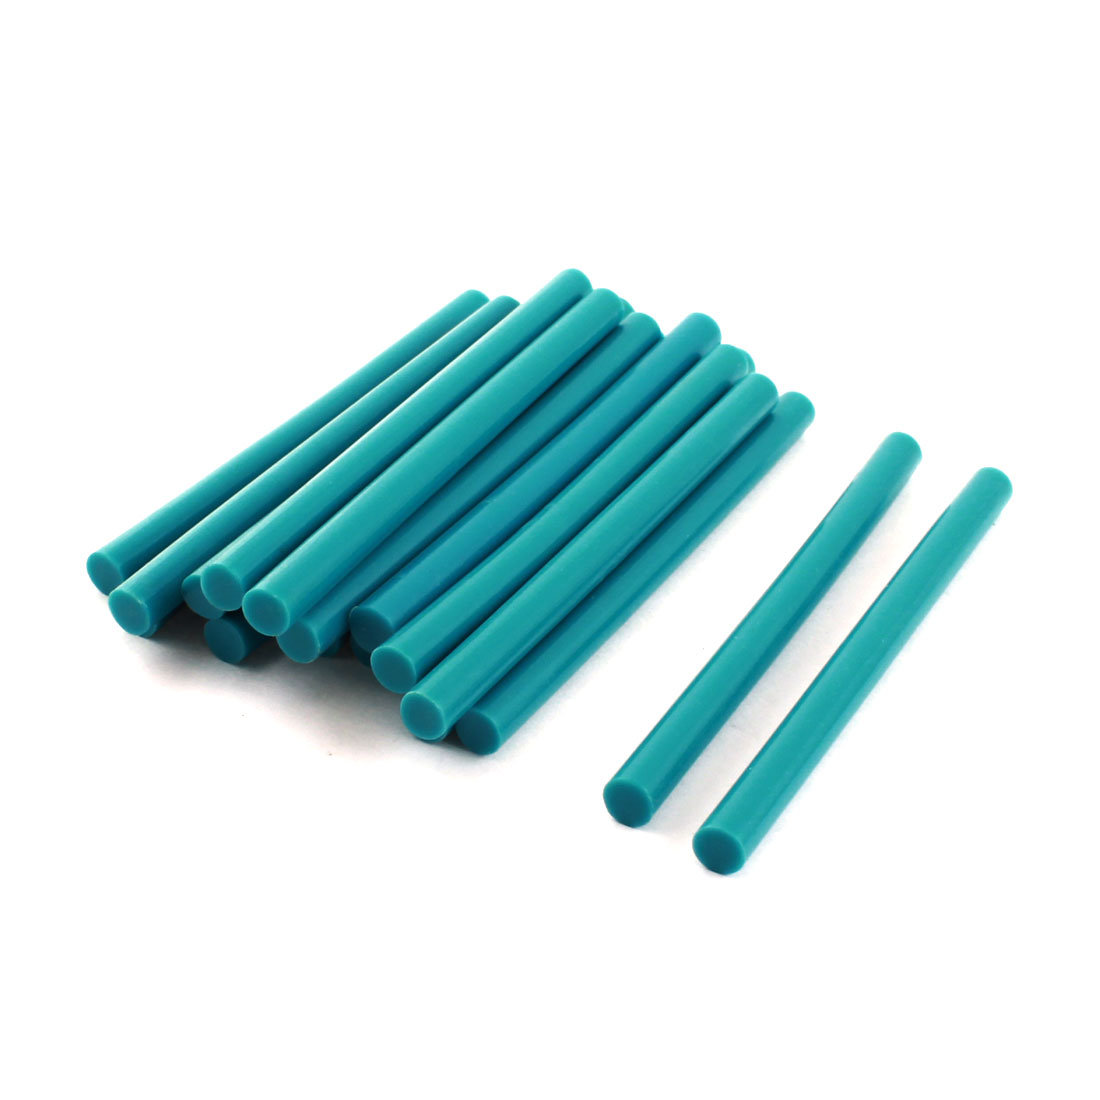 20 Pcs Turquoise Hot Melt Glue Gun Adhesive Sticks 7mm x 100mm for Arts Crafting